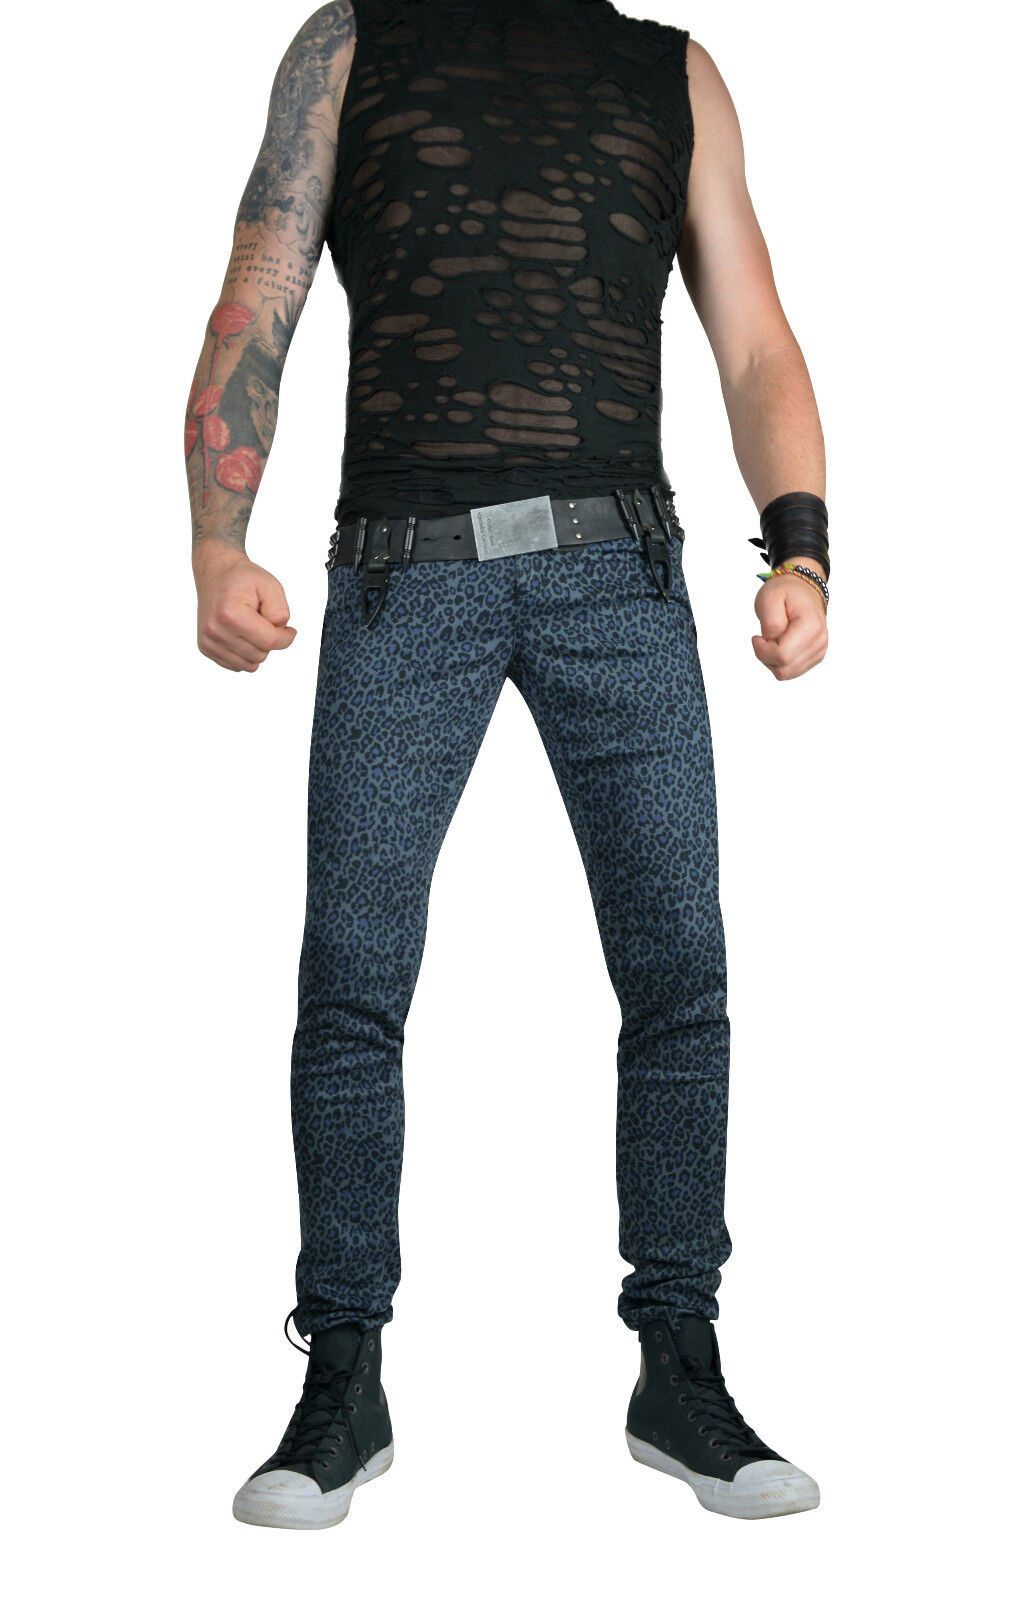 TRIPP GRAY CHEETAH EXPLOITED SKINNY JEANS ROCKER UNISEX FIT PUNK ROCK PANTS Clothing, Shoes & Accessories